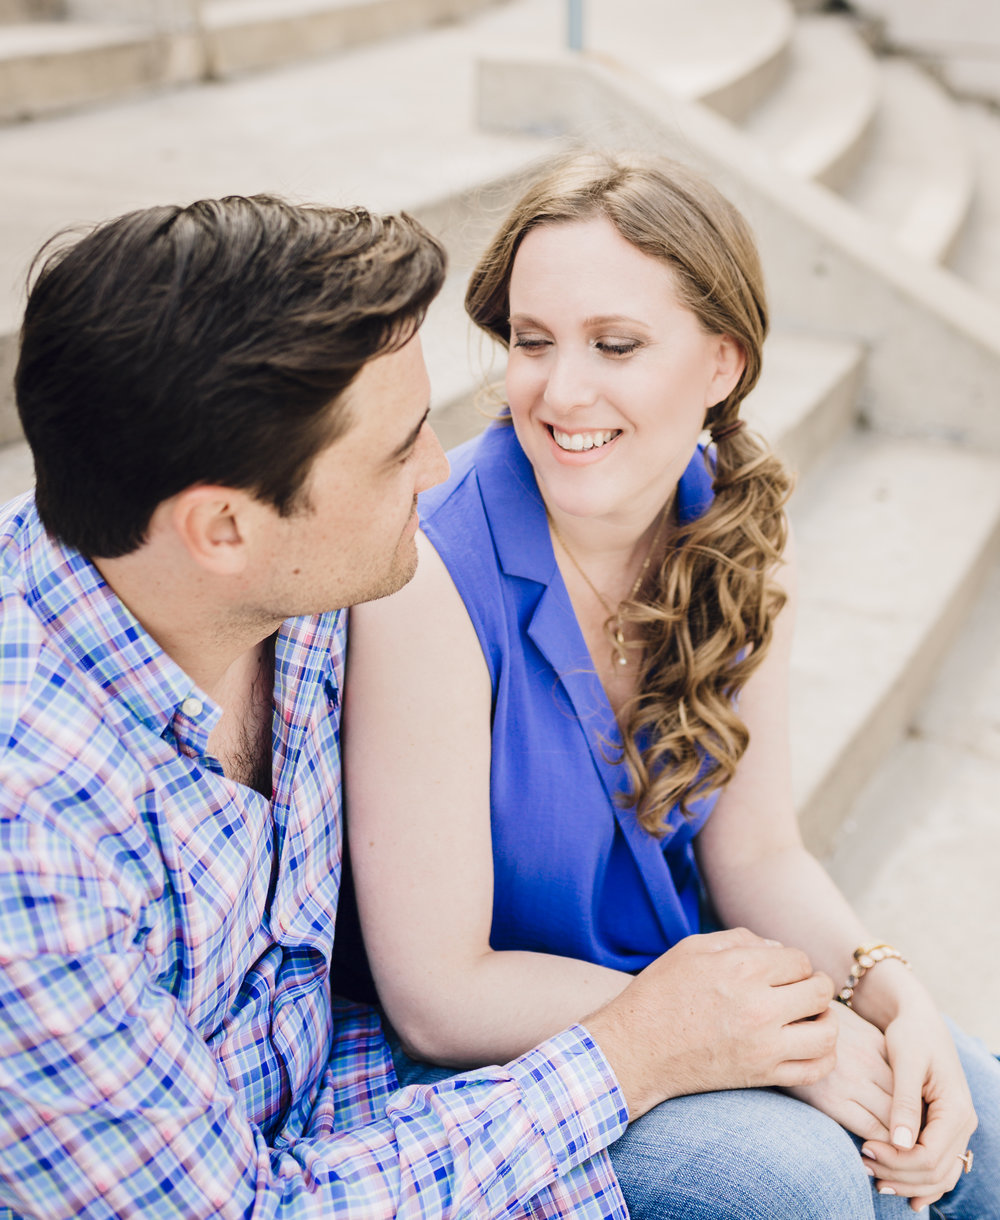 shayna&josh-engagement-057-Edit.jpg